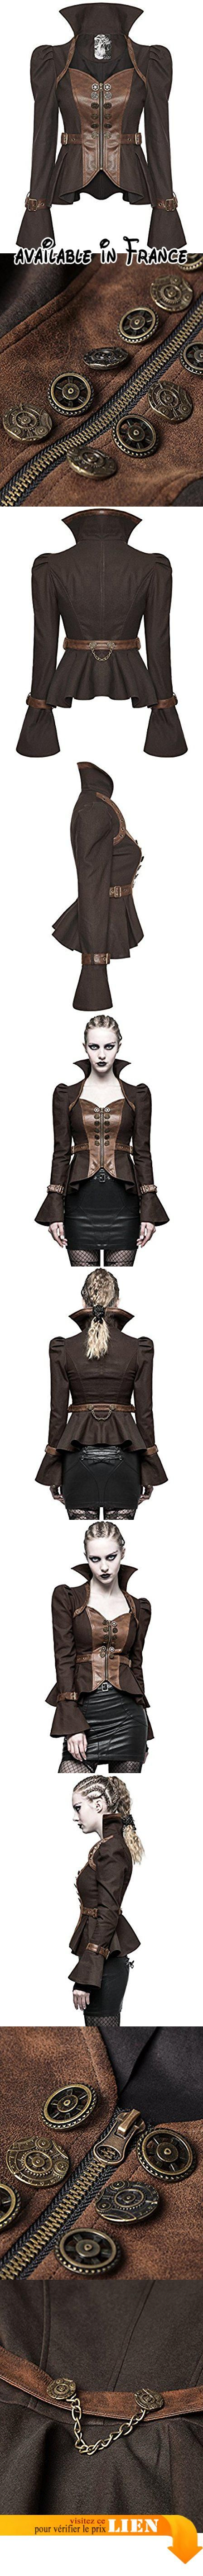 B075THTJ7X : Punk Rave femmes Steampunk Veste simili-cuir brun cuivre gothique vintage victorien - Marron M: UK Womens Size 10. PARFAIT TENUE POUR steampunks et vintage amateurs de. Article punk rave authentique. 60% coton 35% polyester 5% élasthanne. NEUF pour femmes blouson cintré par Punk Rave. marron 60%COTON 35%polyester 5%élasthanne